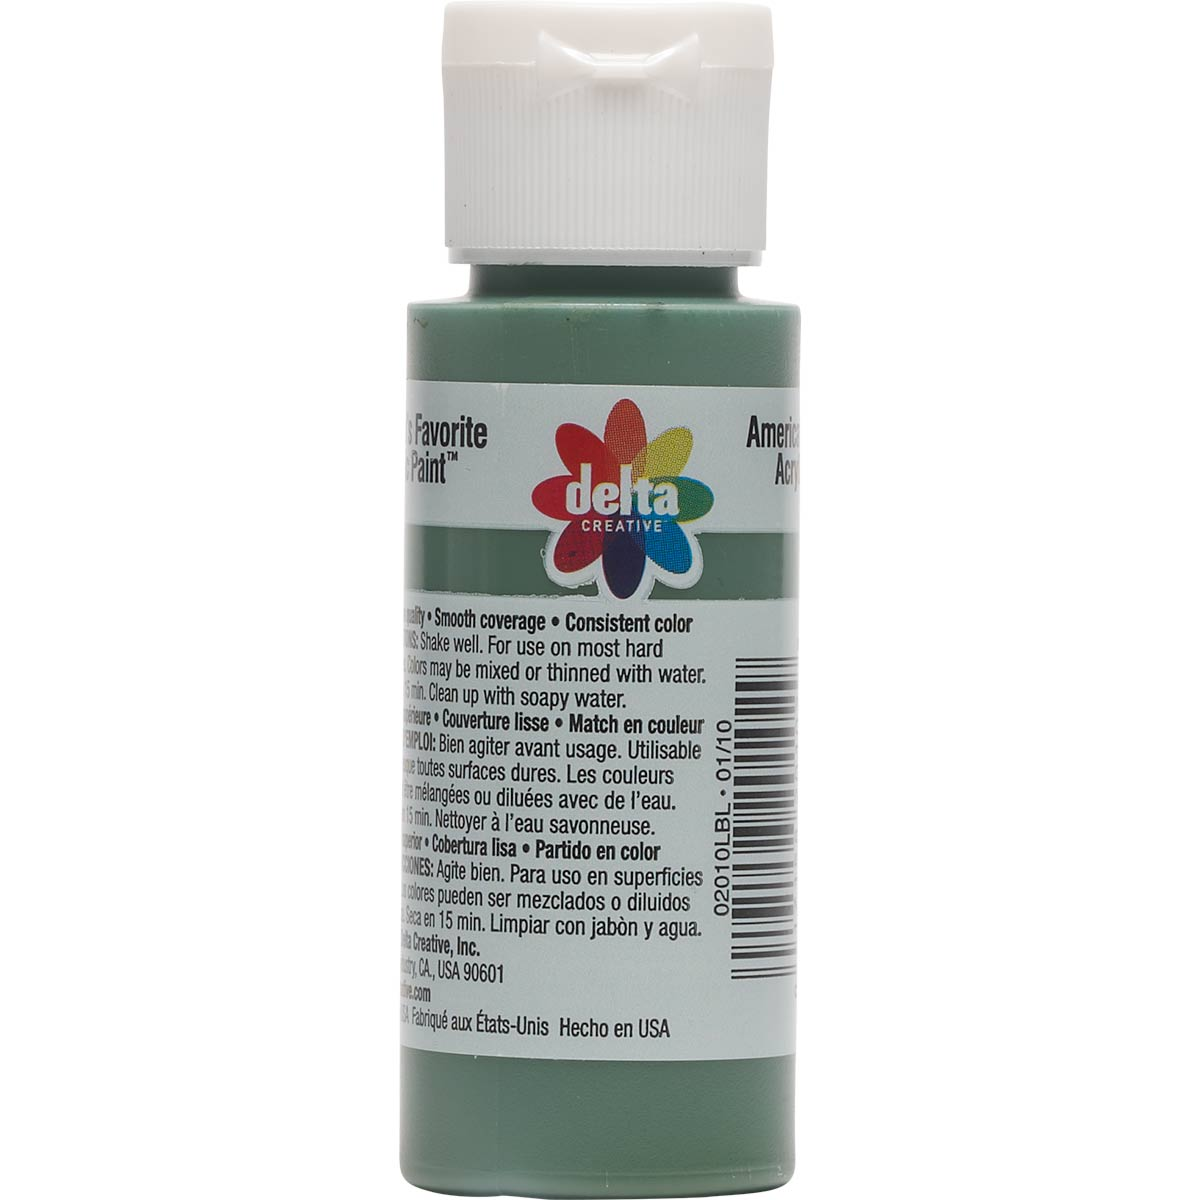 Delta Ceramcoat ® Acrylic Paint - Forest Green, 2 oz. - 020100202W